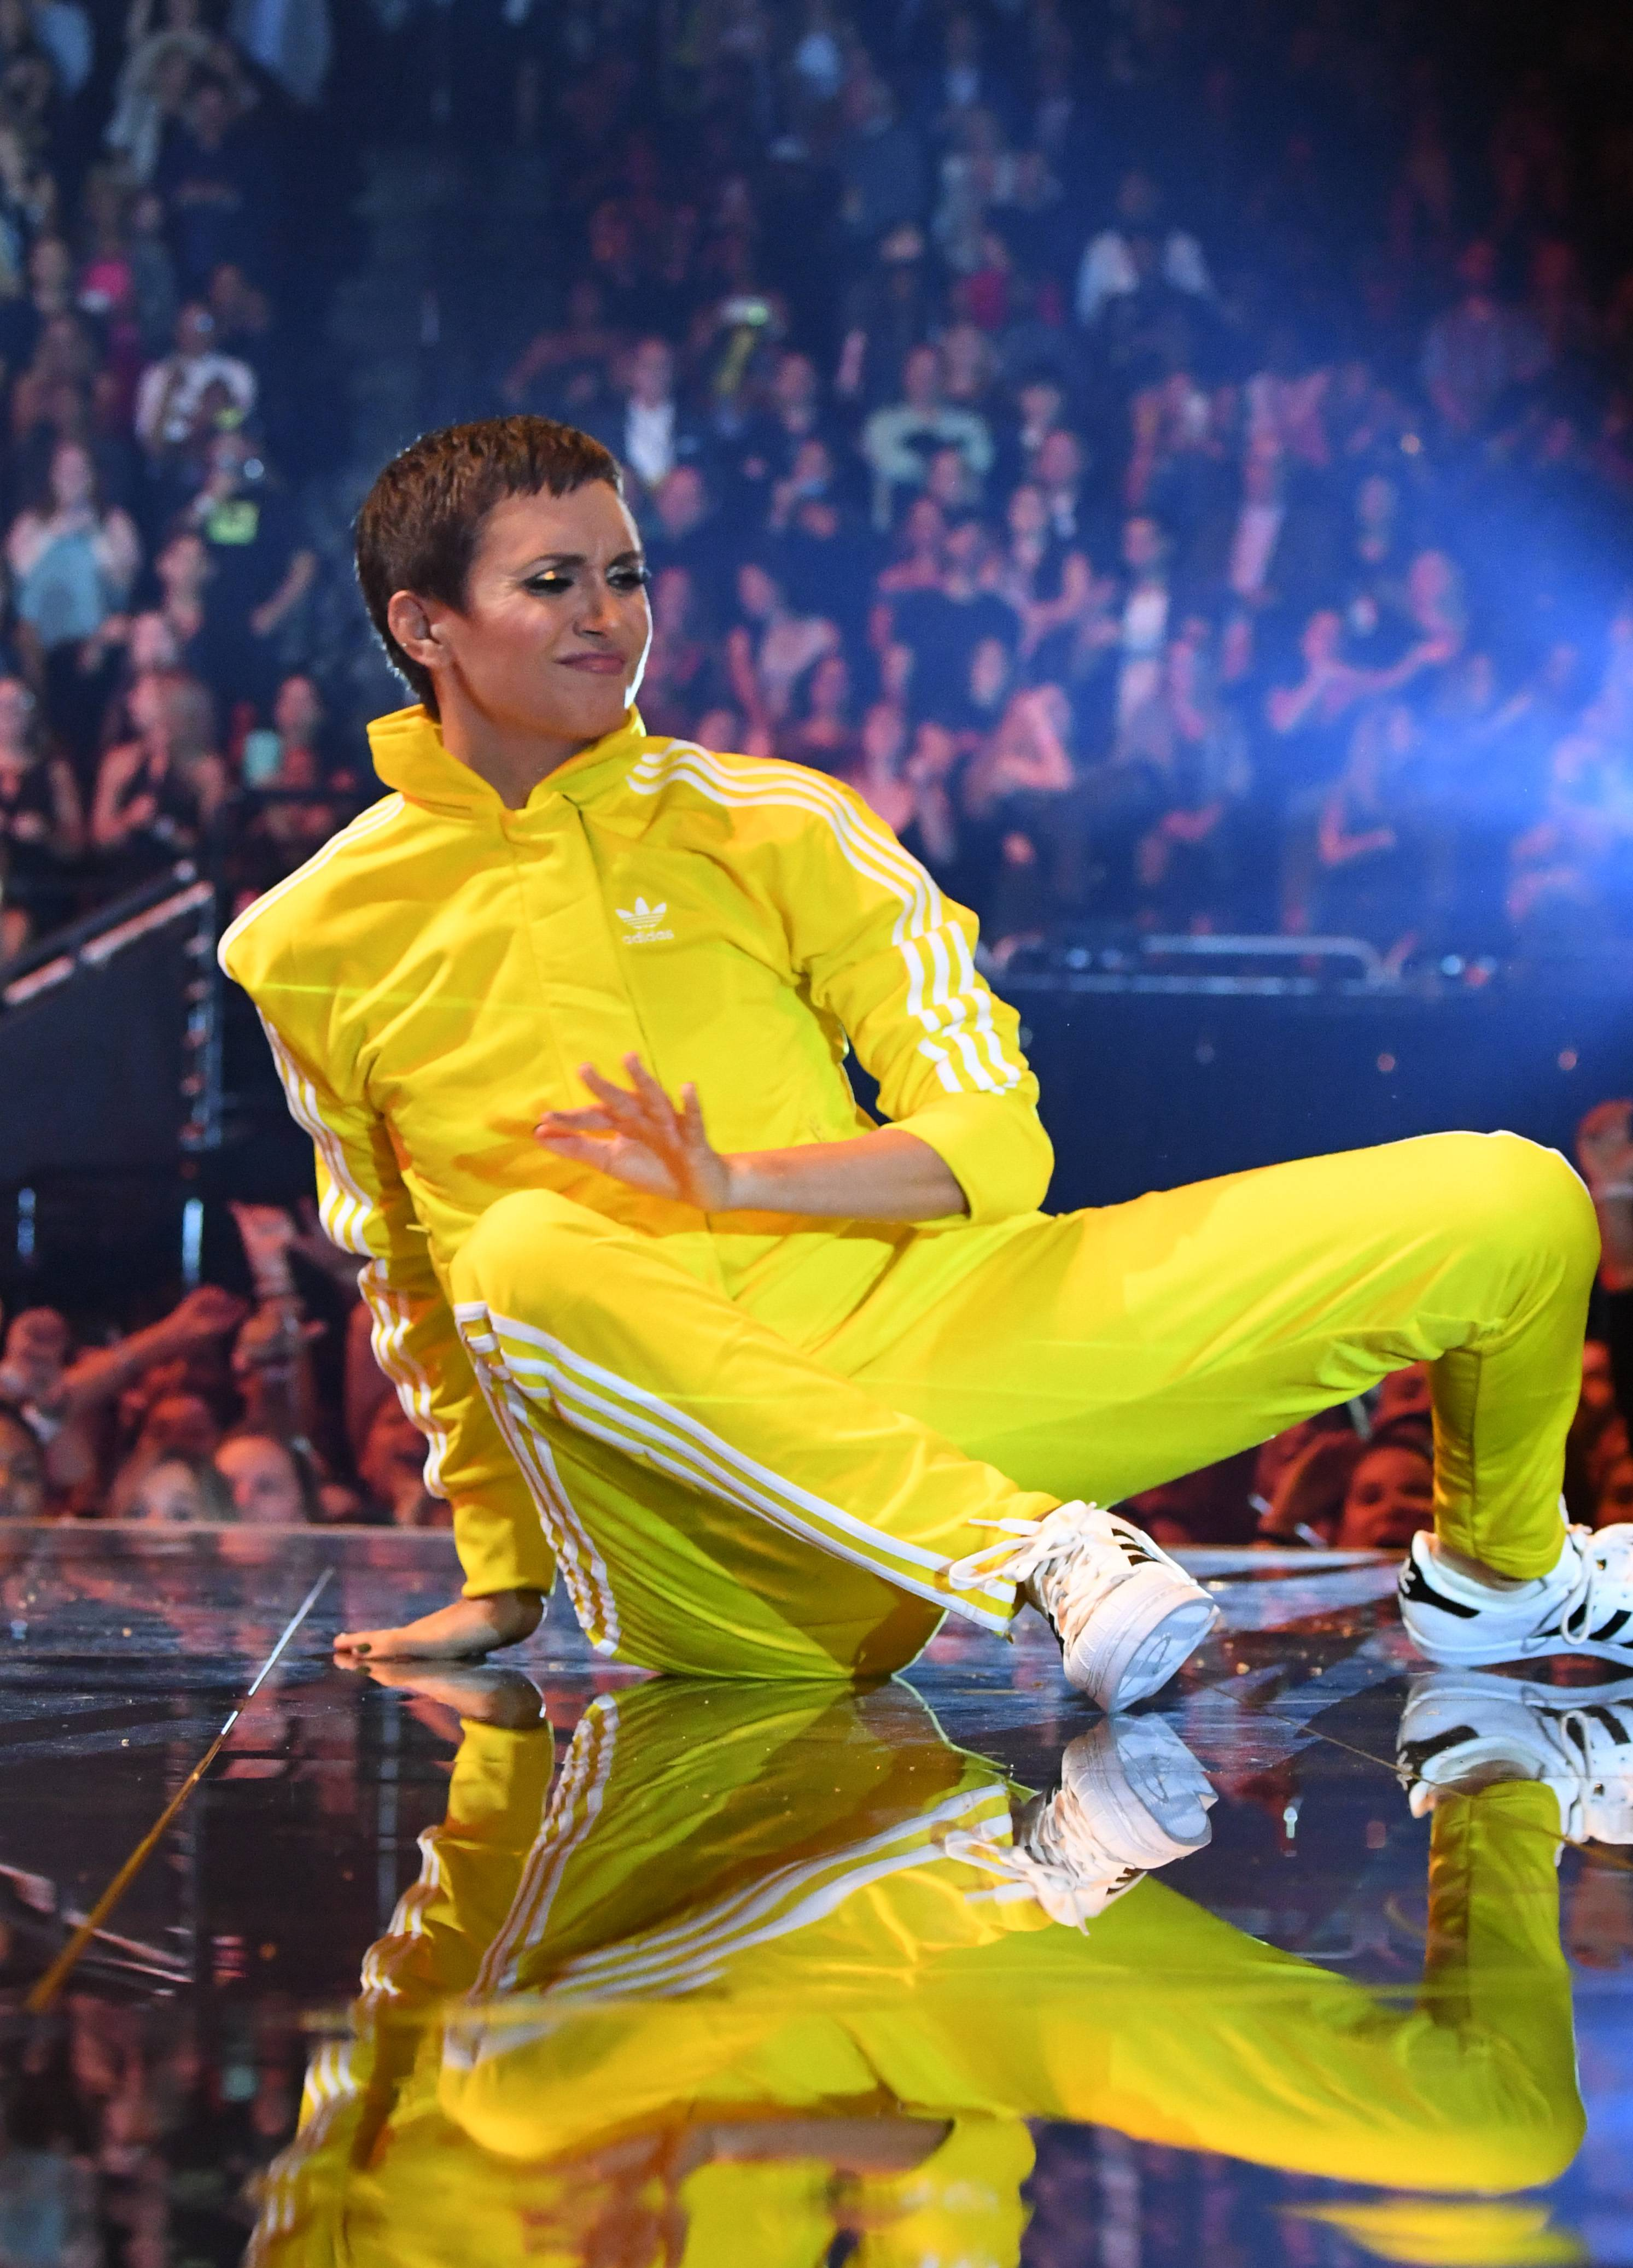 Alyson Stoner's stank face is everything while she dances at the 2019 VMAs.